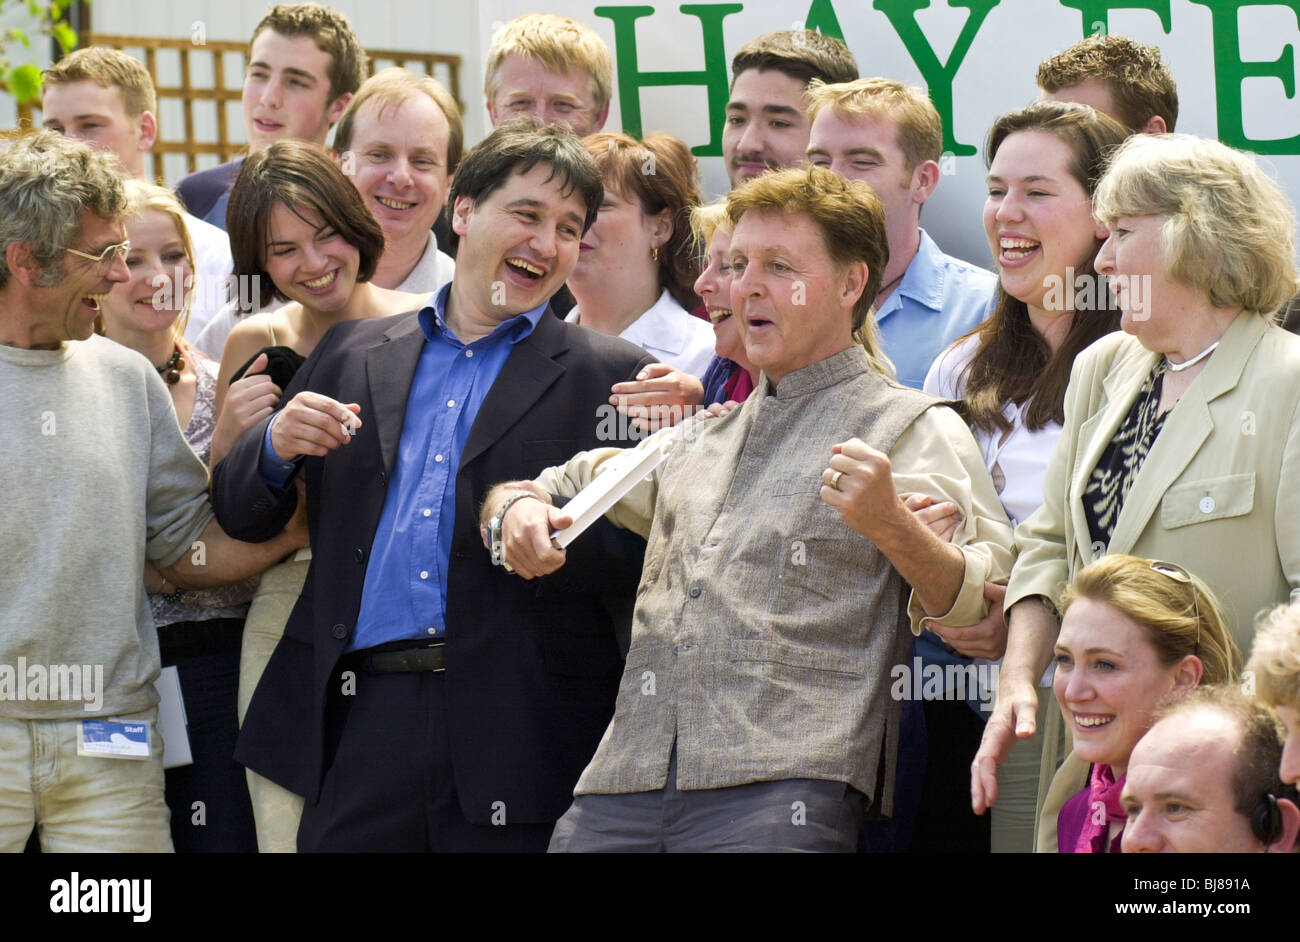 Paul McCartney with Peter Florence and staff at Hay Festival 2001 - Stock Image